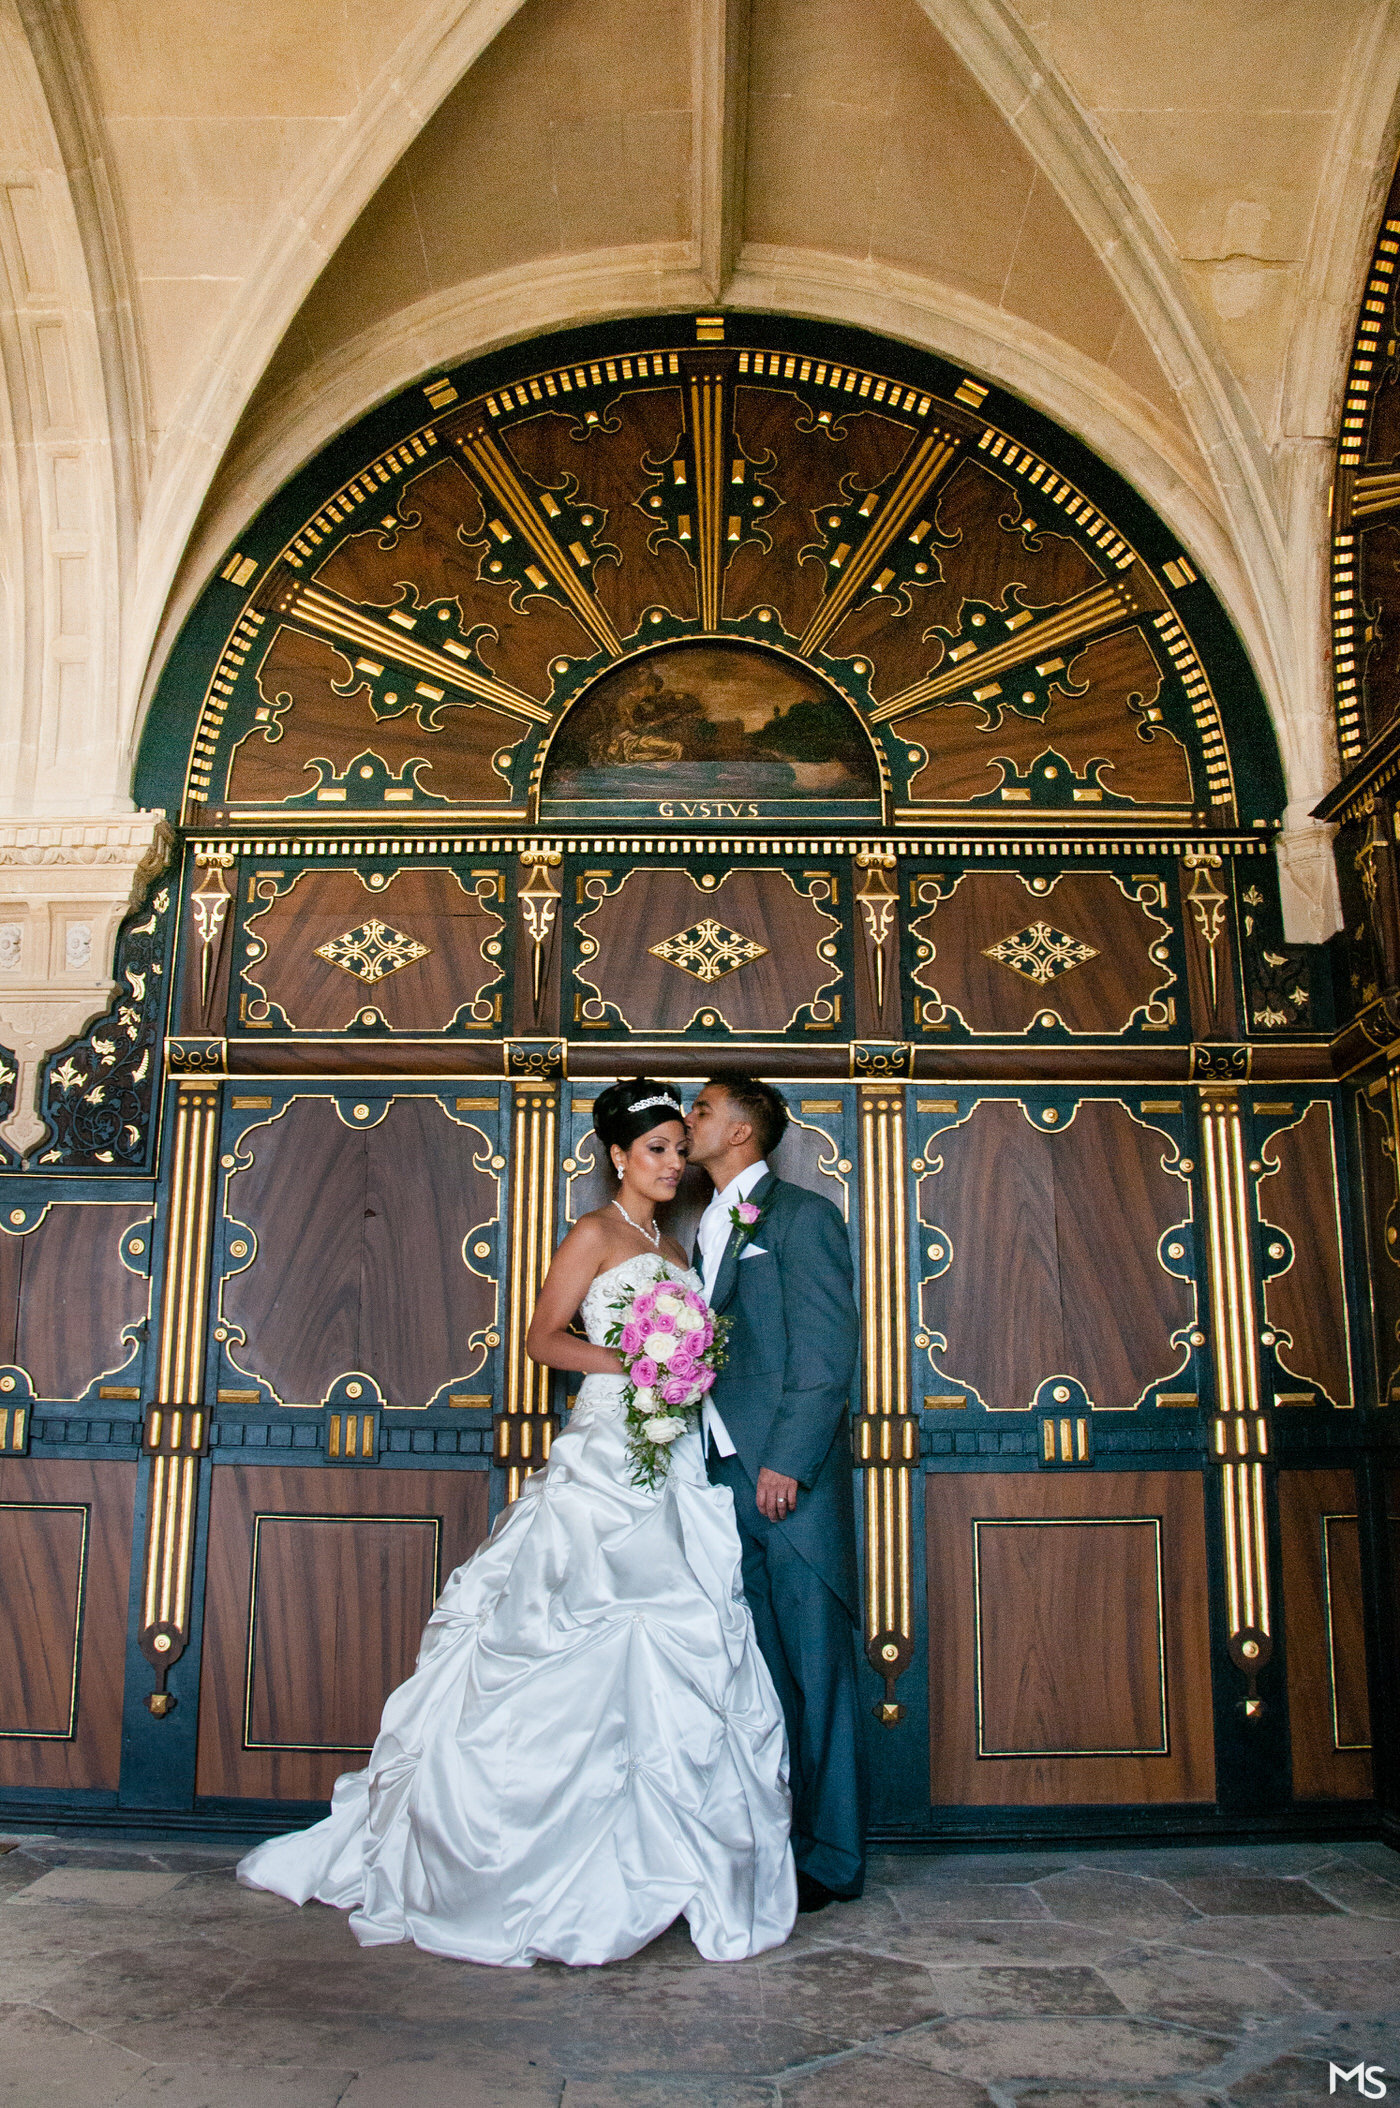 Bolsover-Castle-Indian-wedding - 21_DSC_5111.jpg